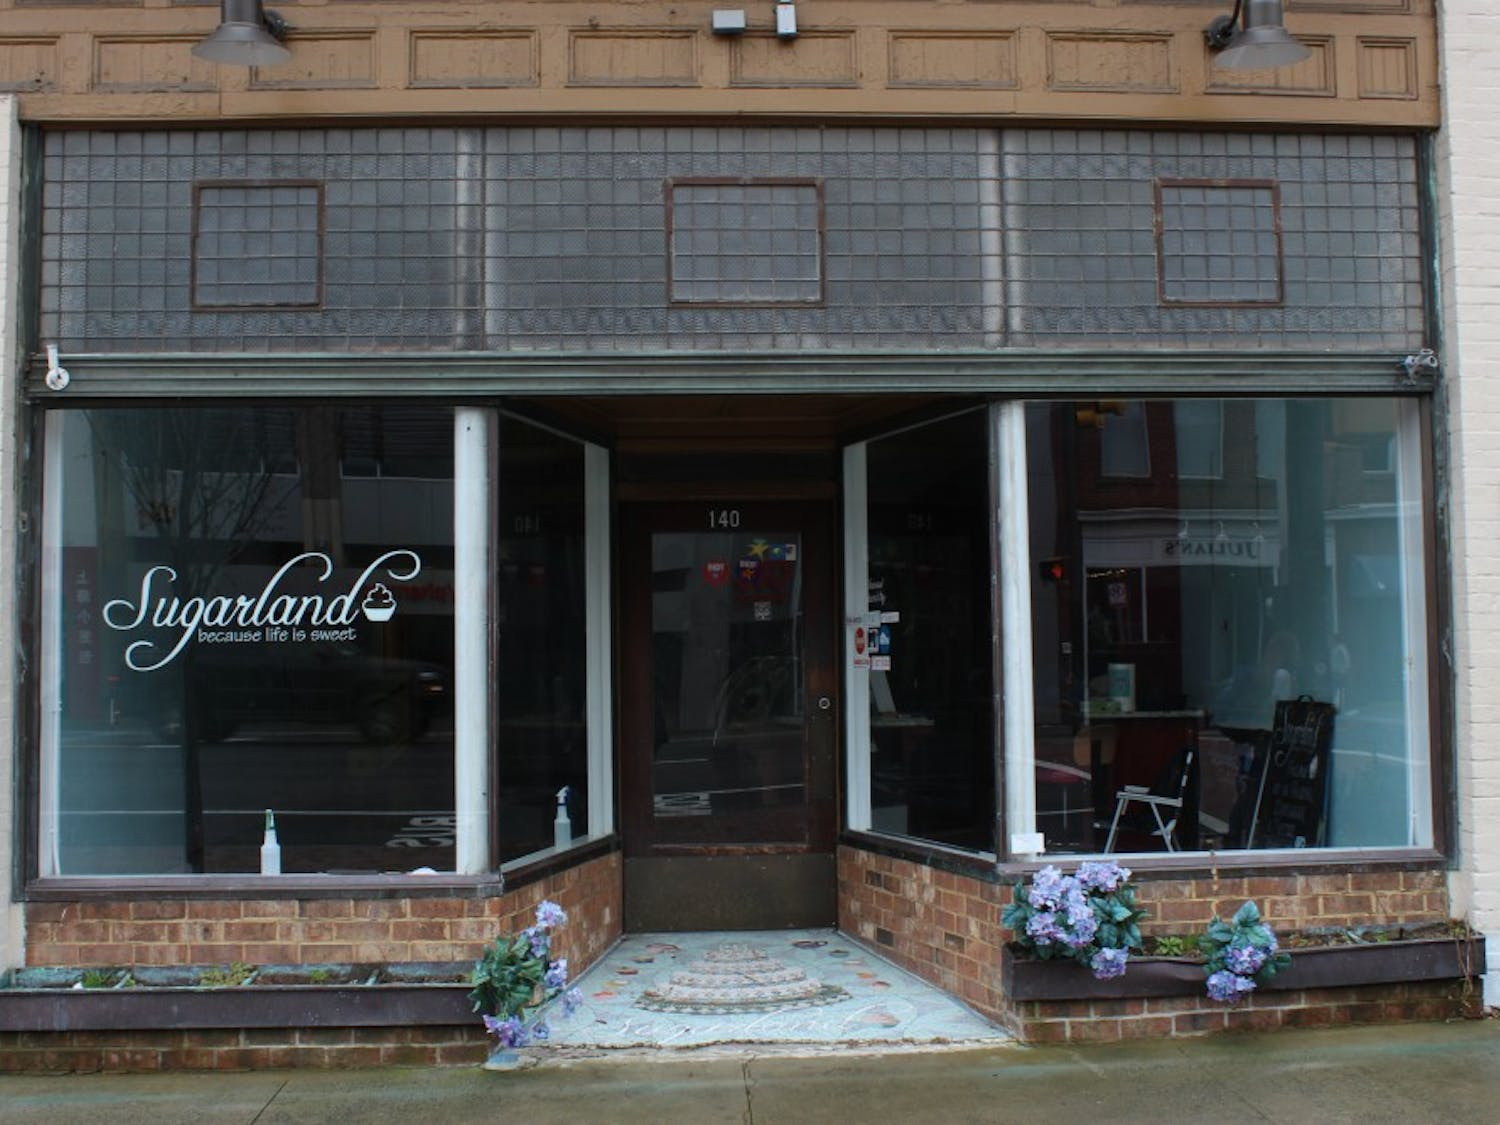 Franklin Street bakery Sugarland closed in October and left a couple cakeless for their wedding. In honor of Valentine's Day, The Daily Tar Heel caught up with the couple to see how the wedding went. February 12, 2019.